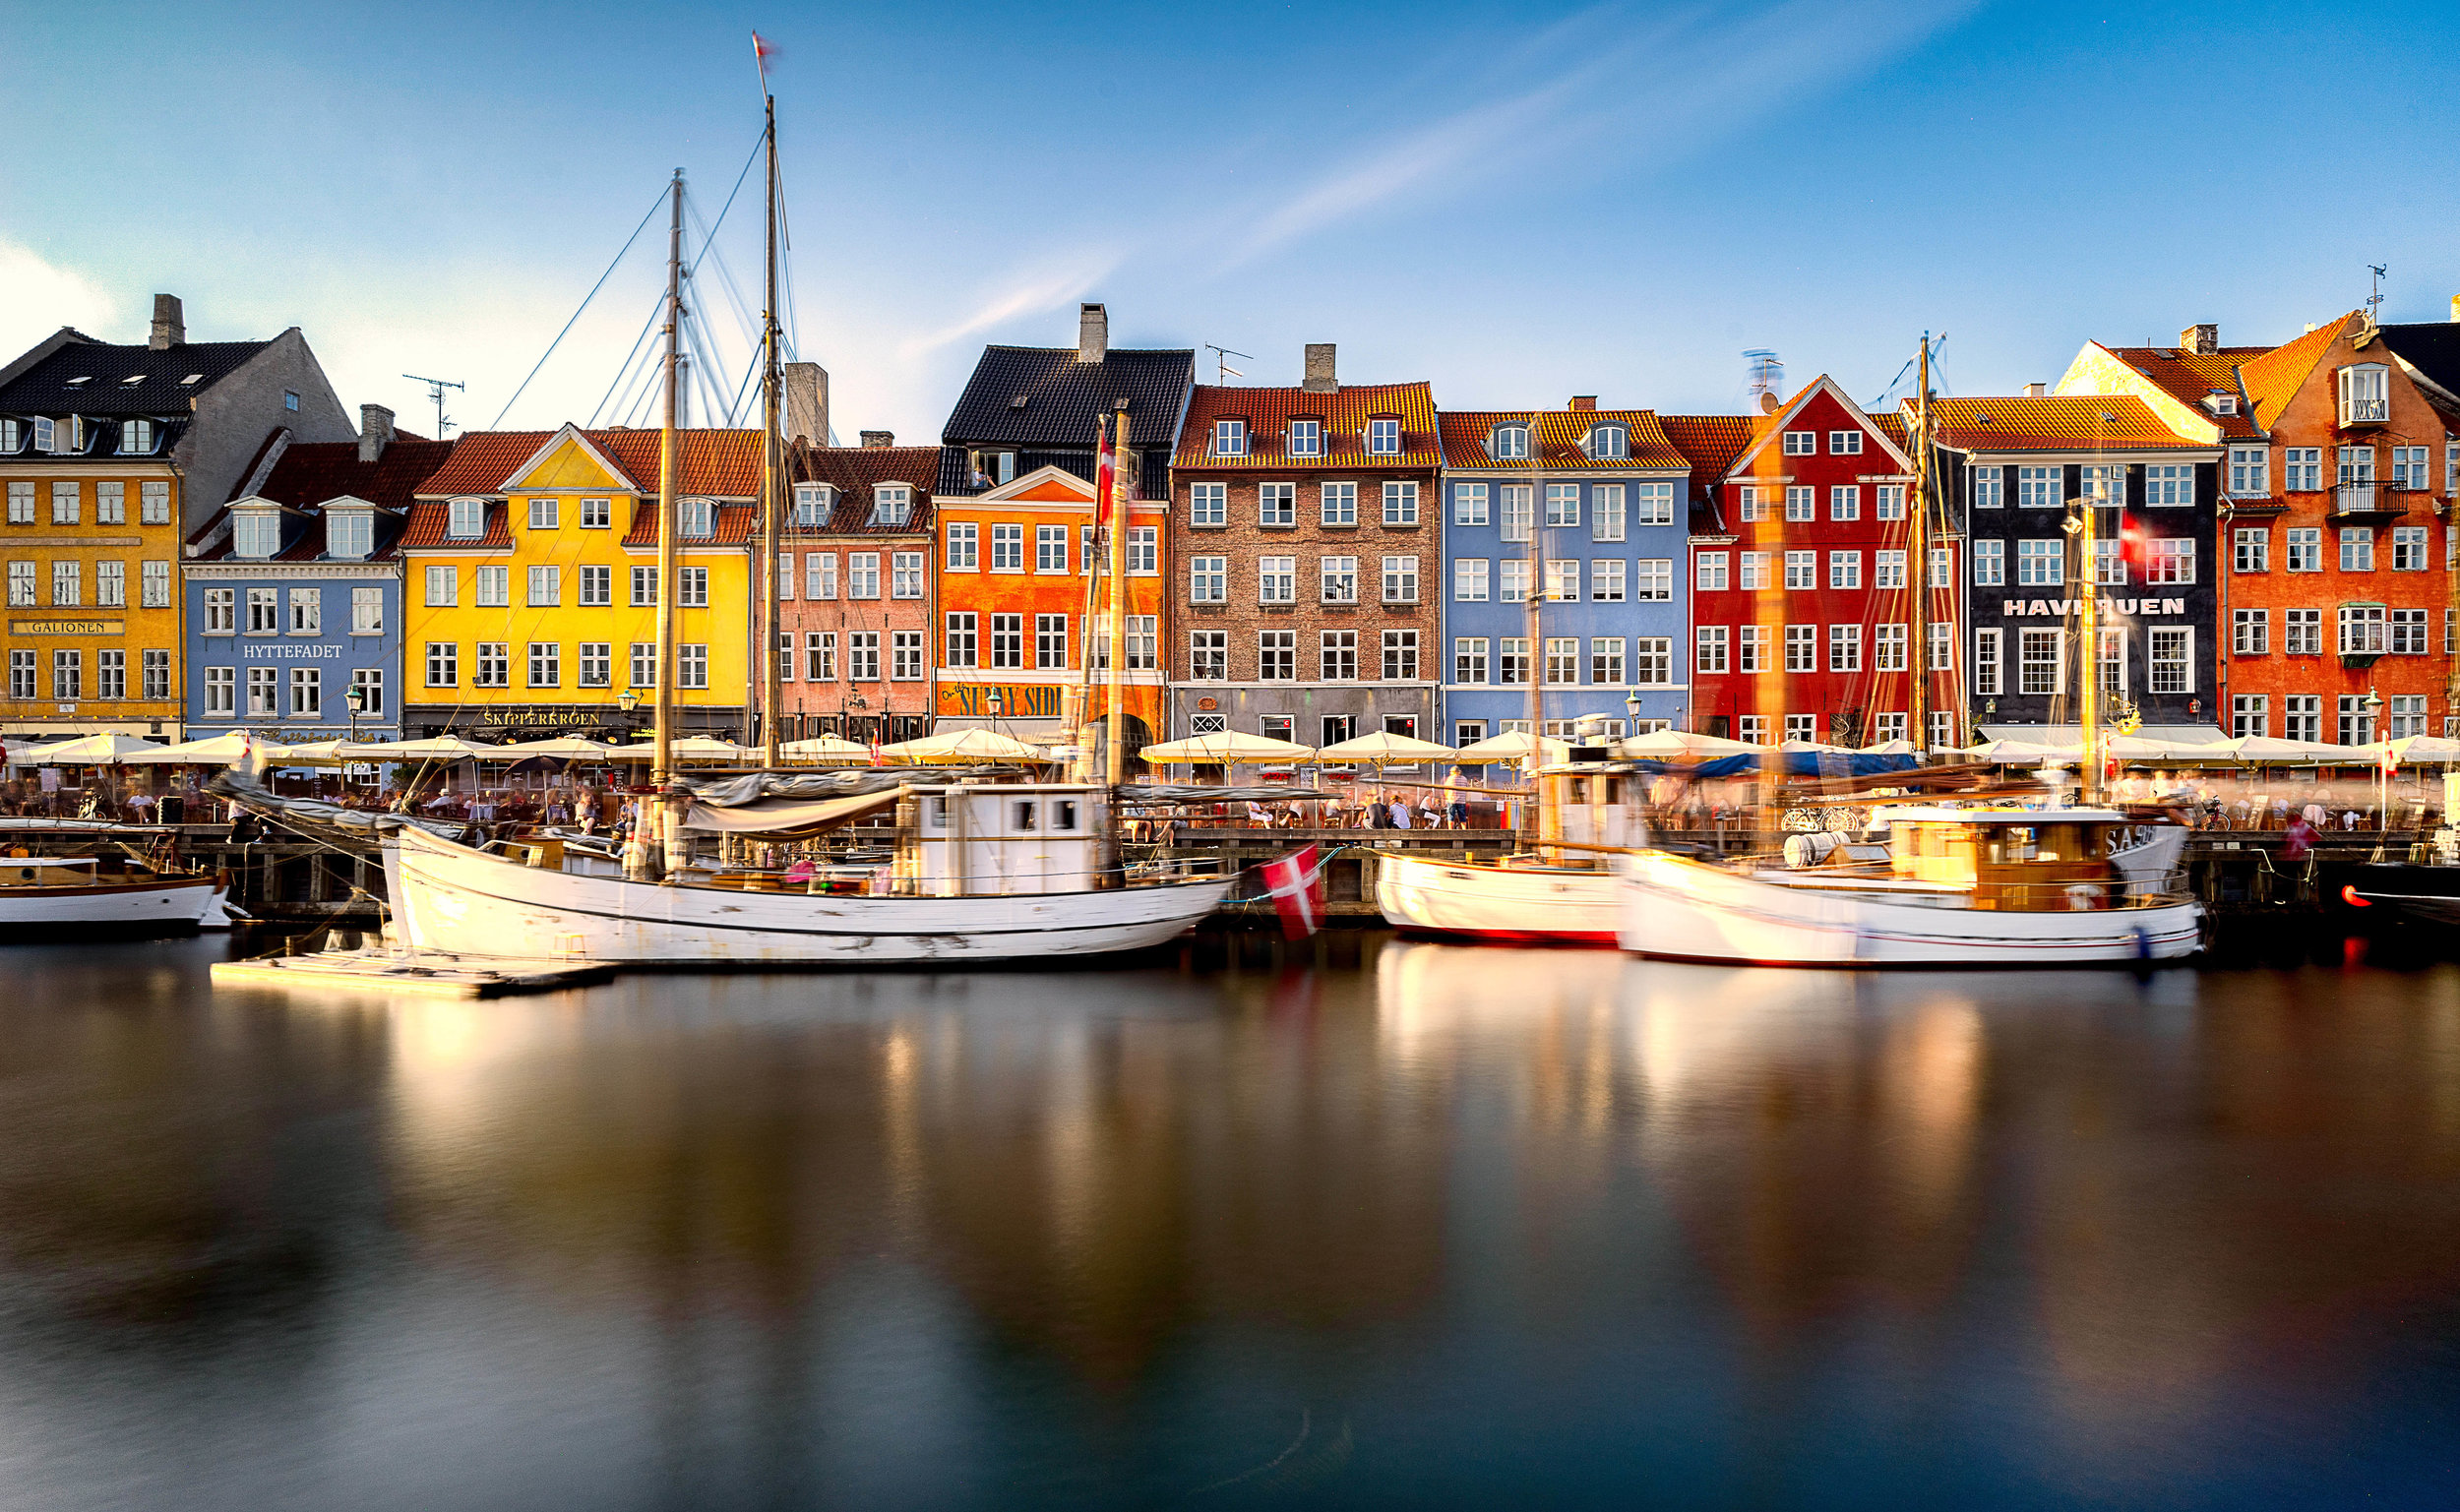 copenhagen. denmark. travel. adventure. europe. scandinavia. history. travelblog. classic view of the city. nyhavn.jpg